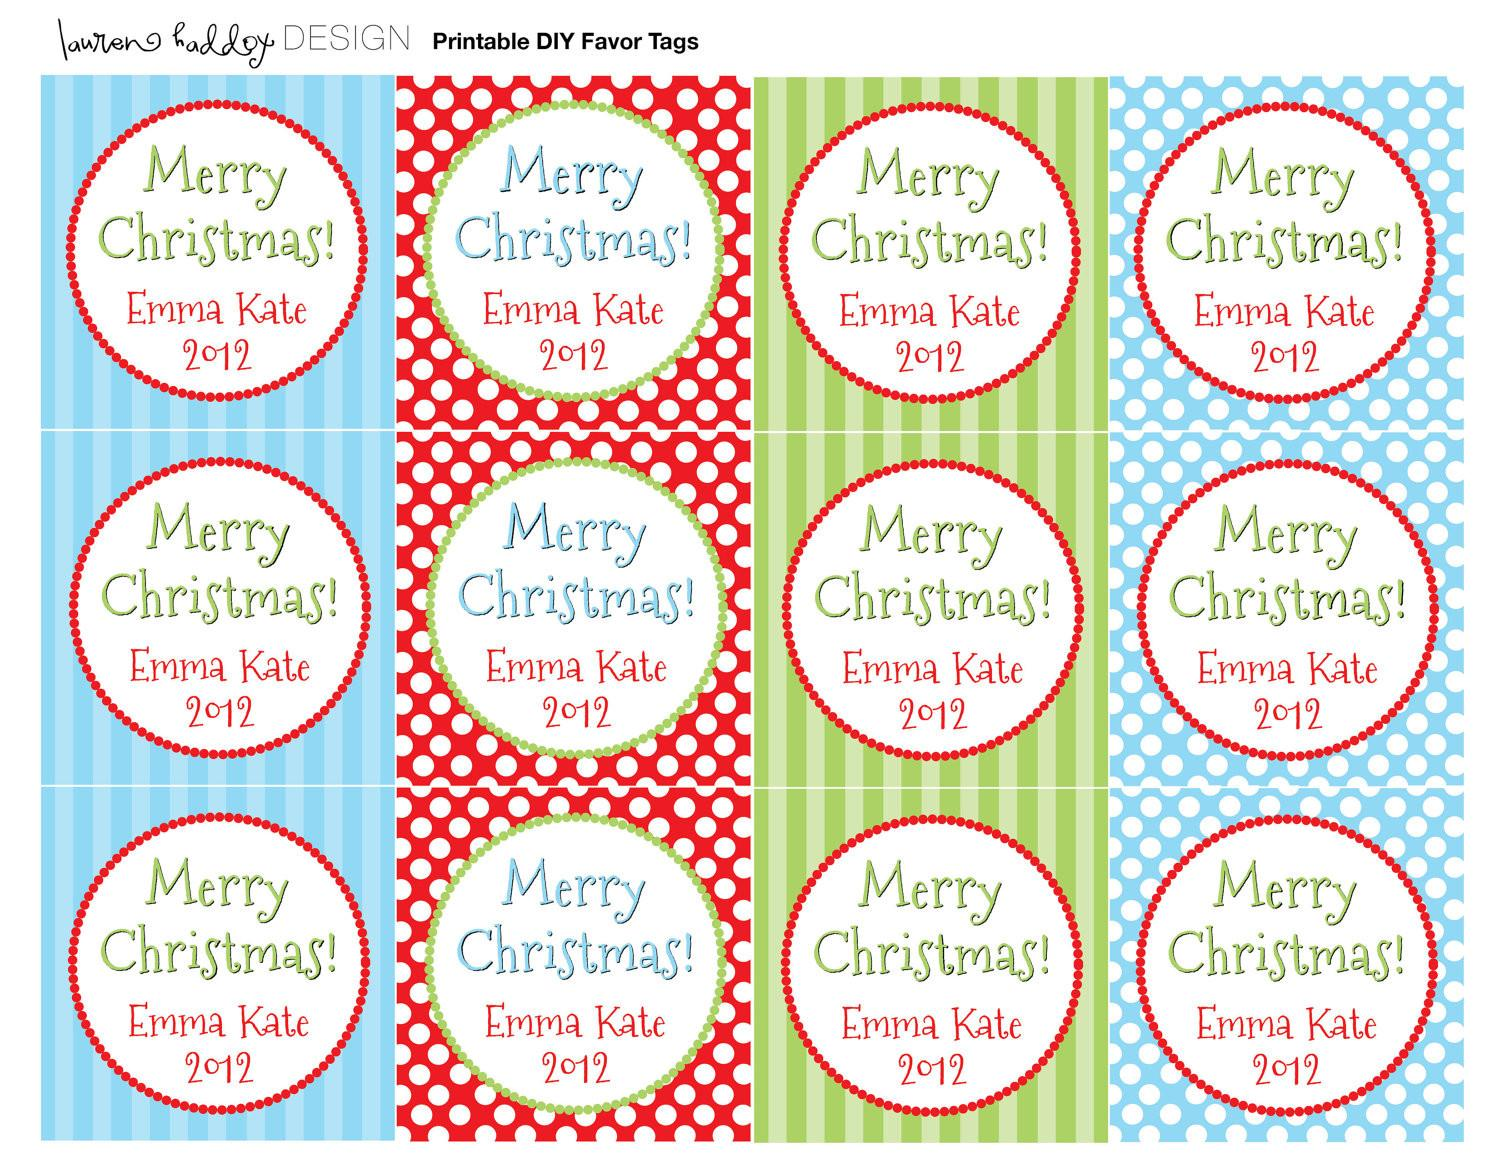 Diy Personalized Merry Christmas Favor